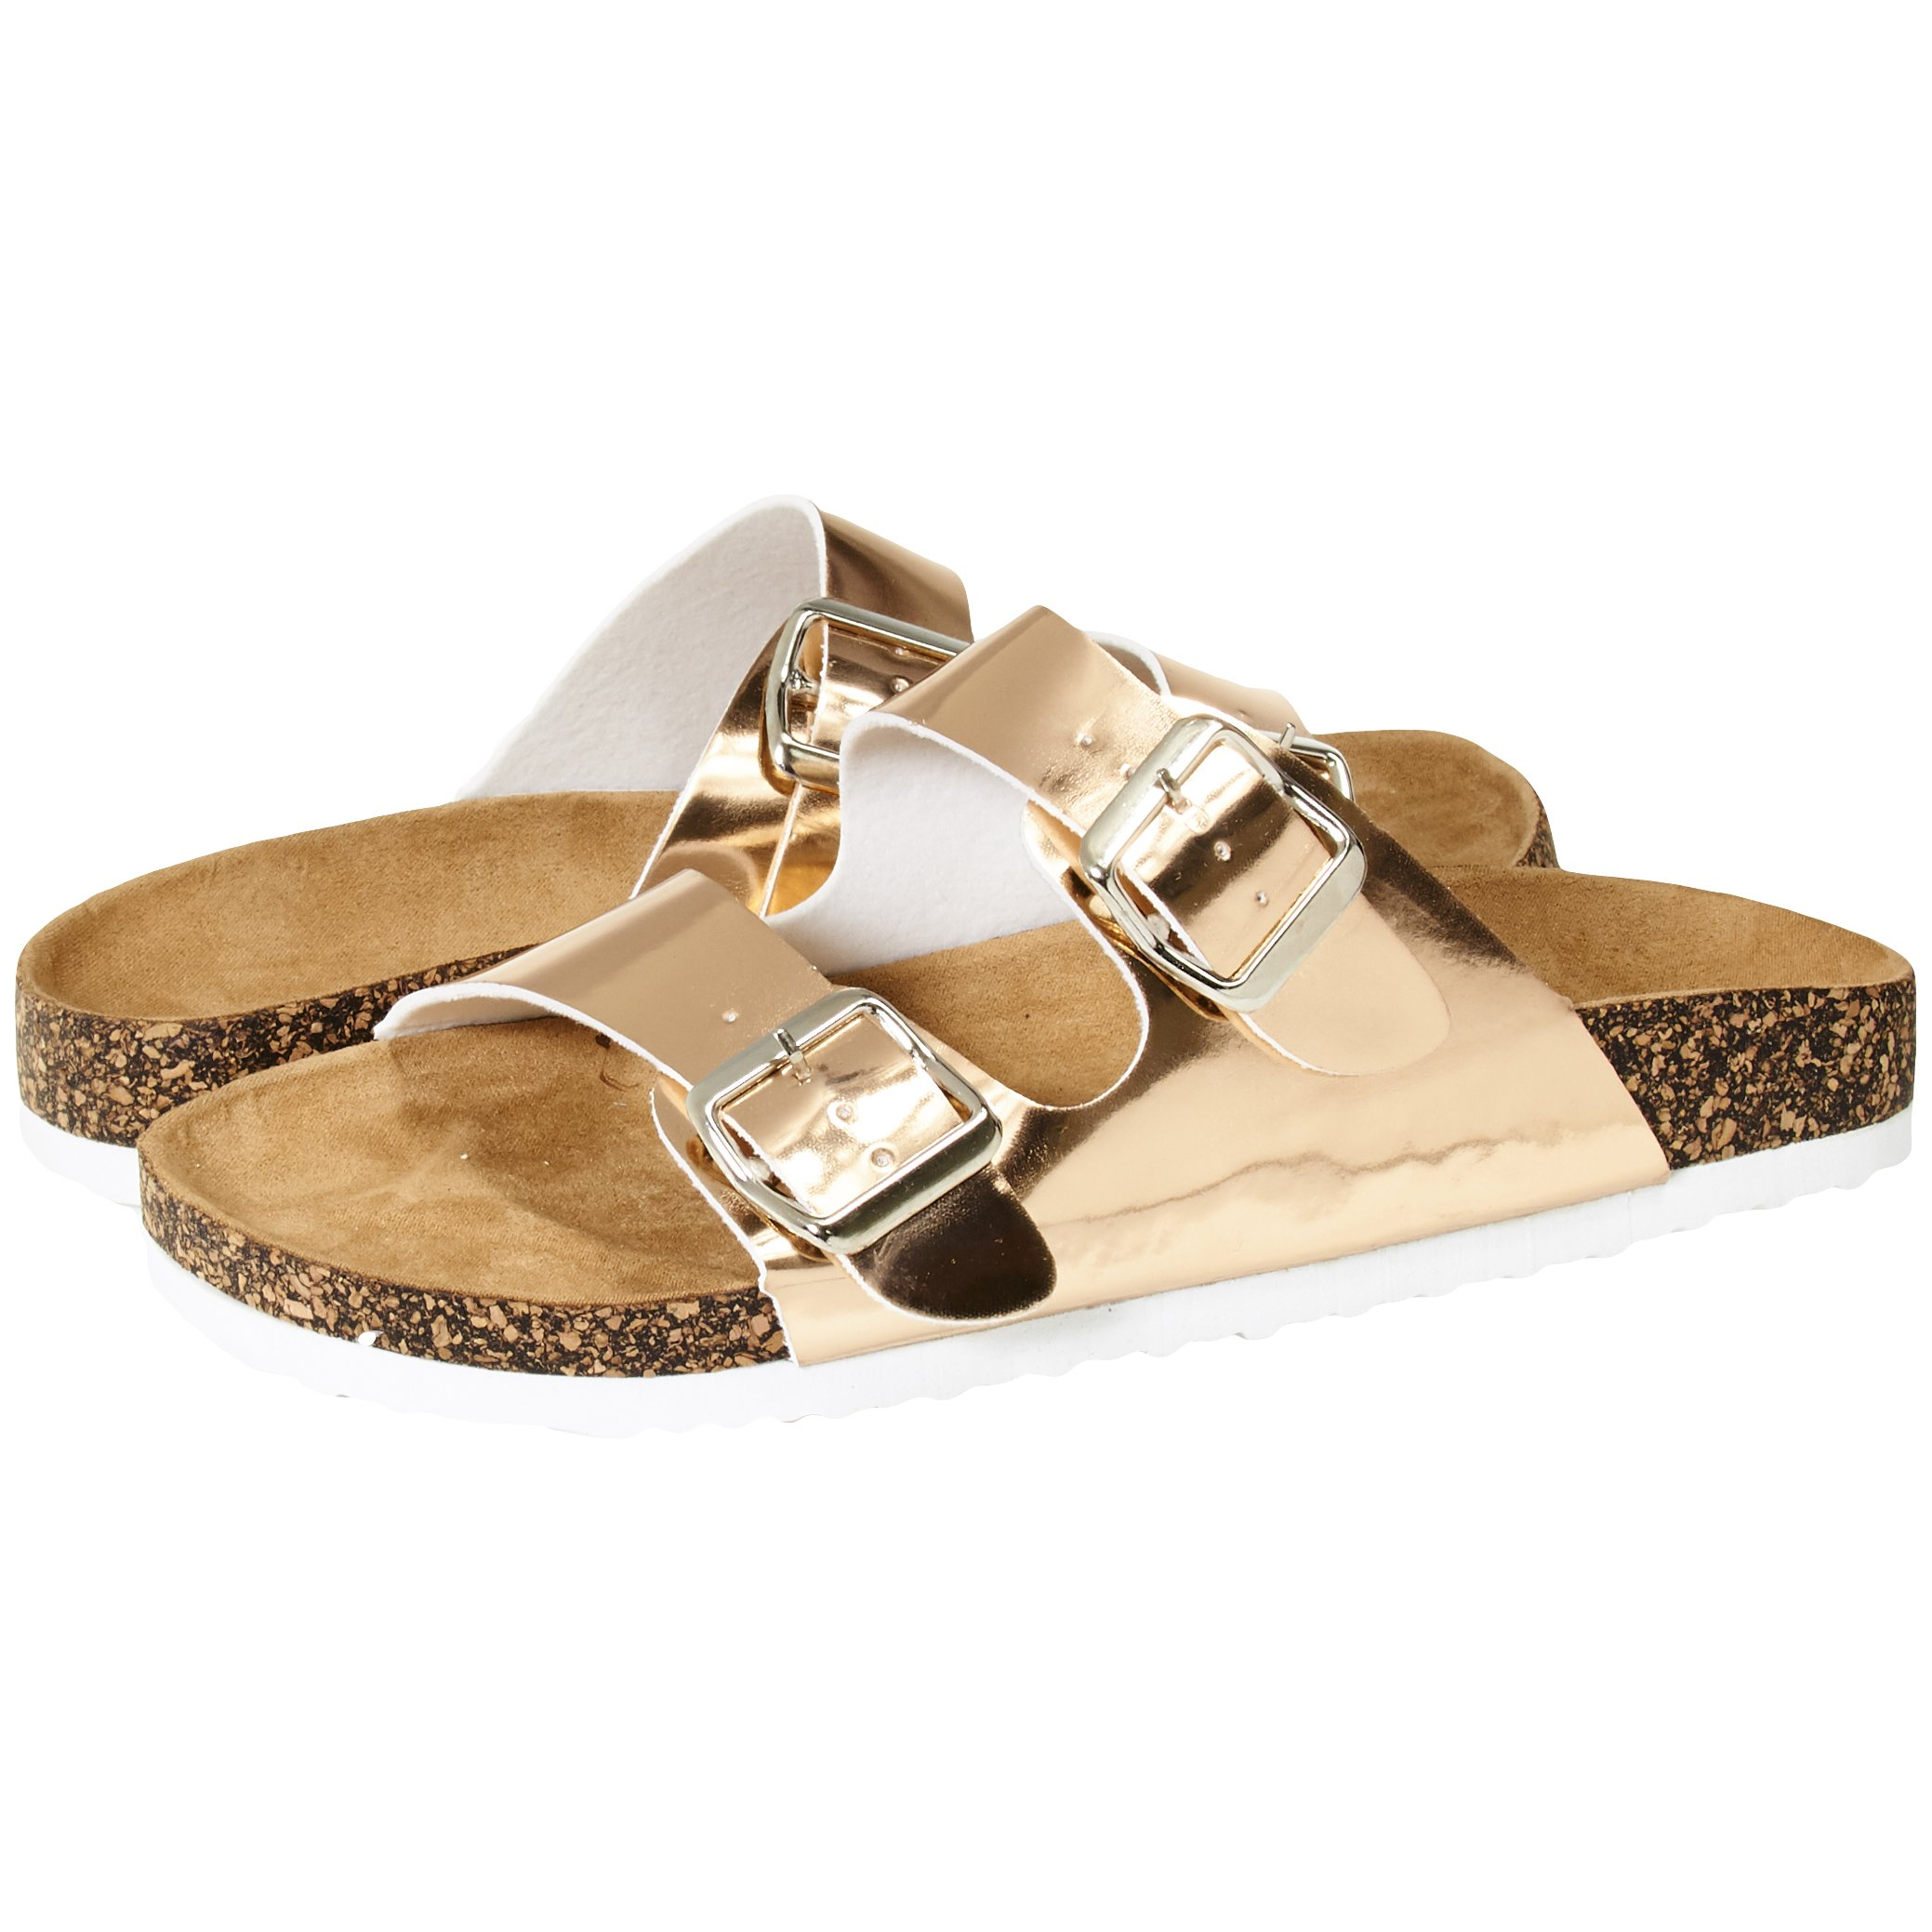 Sara Z Womens Two Buckle Strap Cork Footbed Slide Sandals Size 5/6 Rose Gold